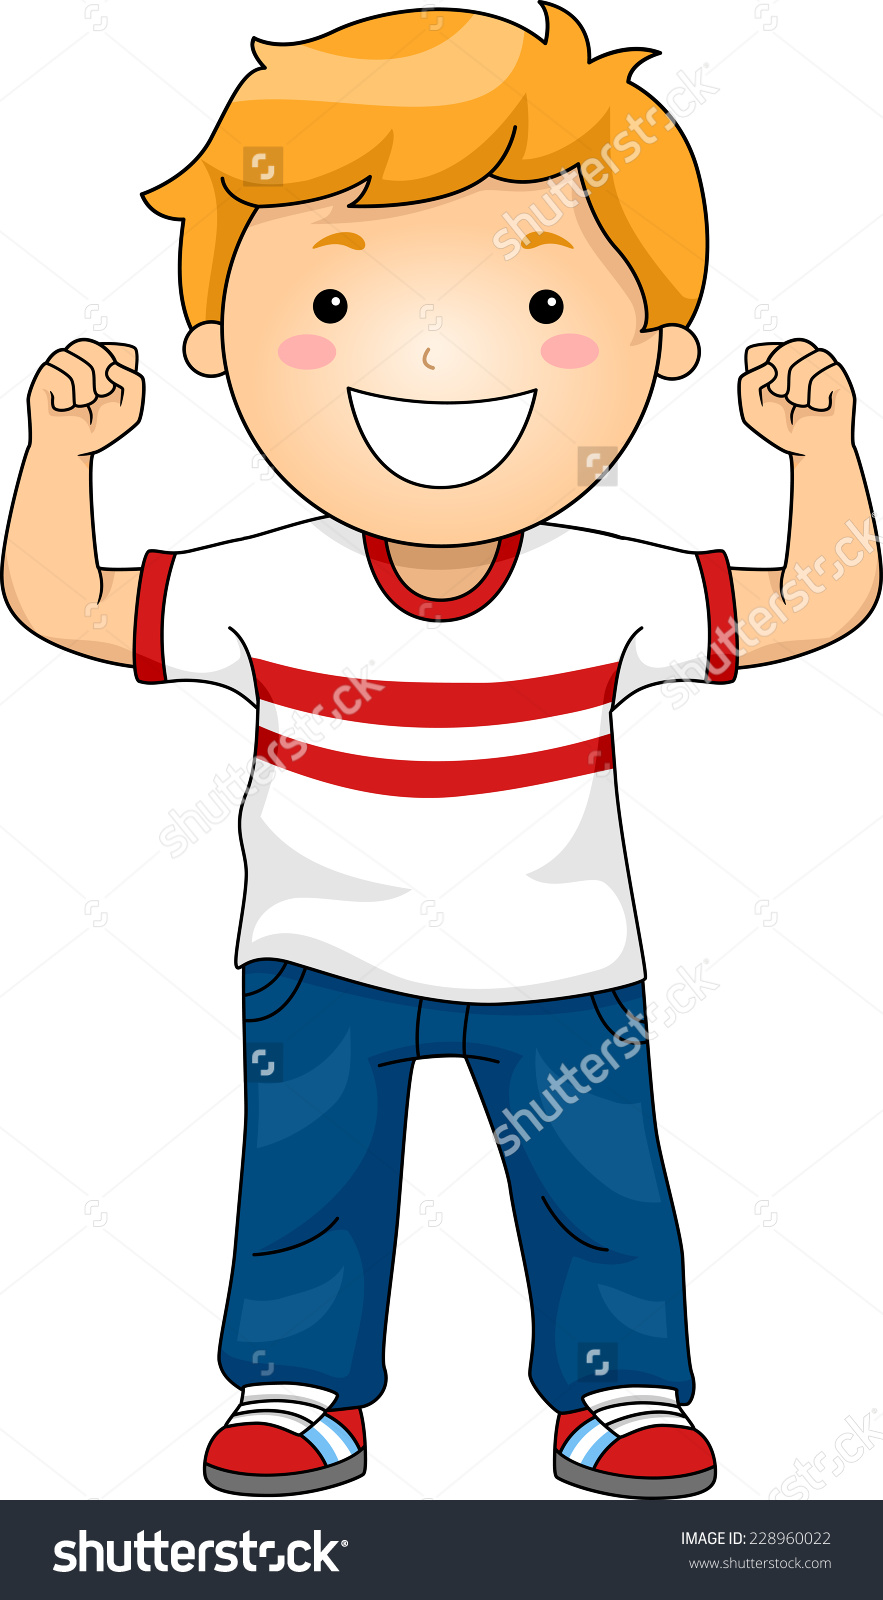 Illustration Featuring A Boy Flexing His Muscles To Demonstrate.